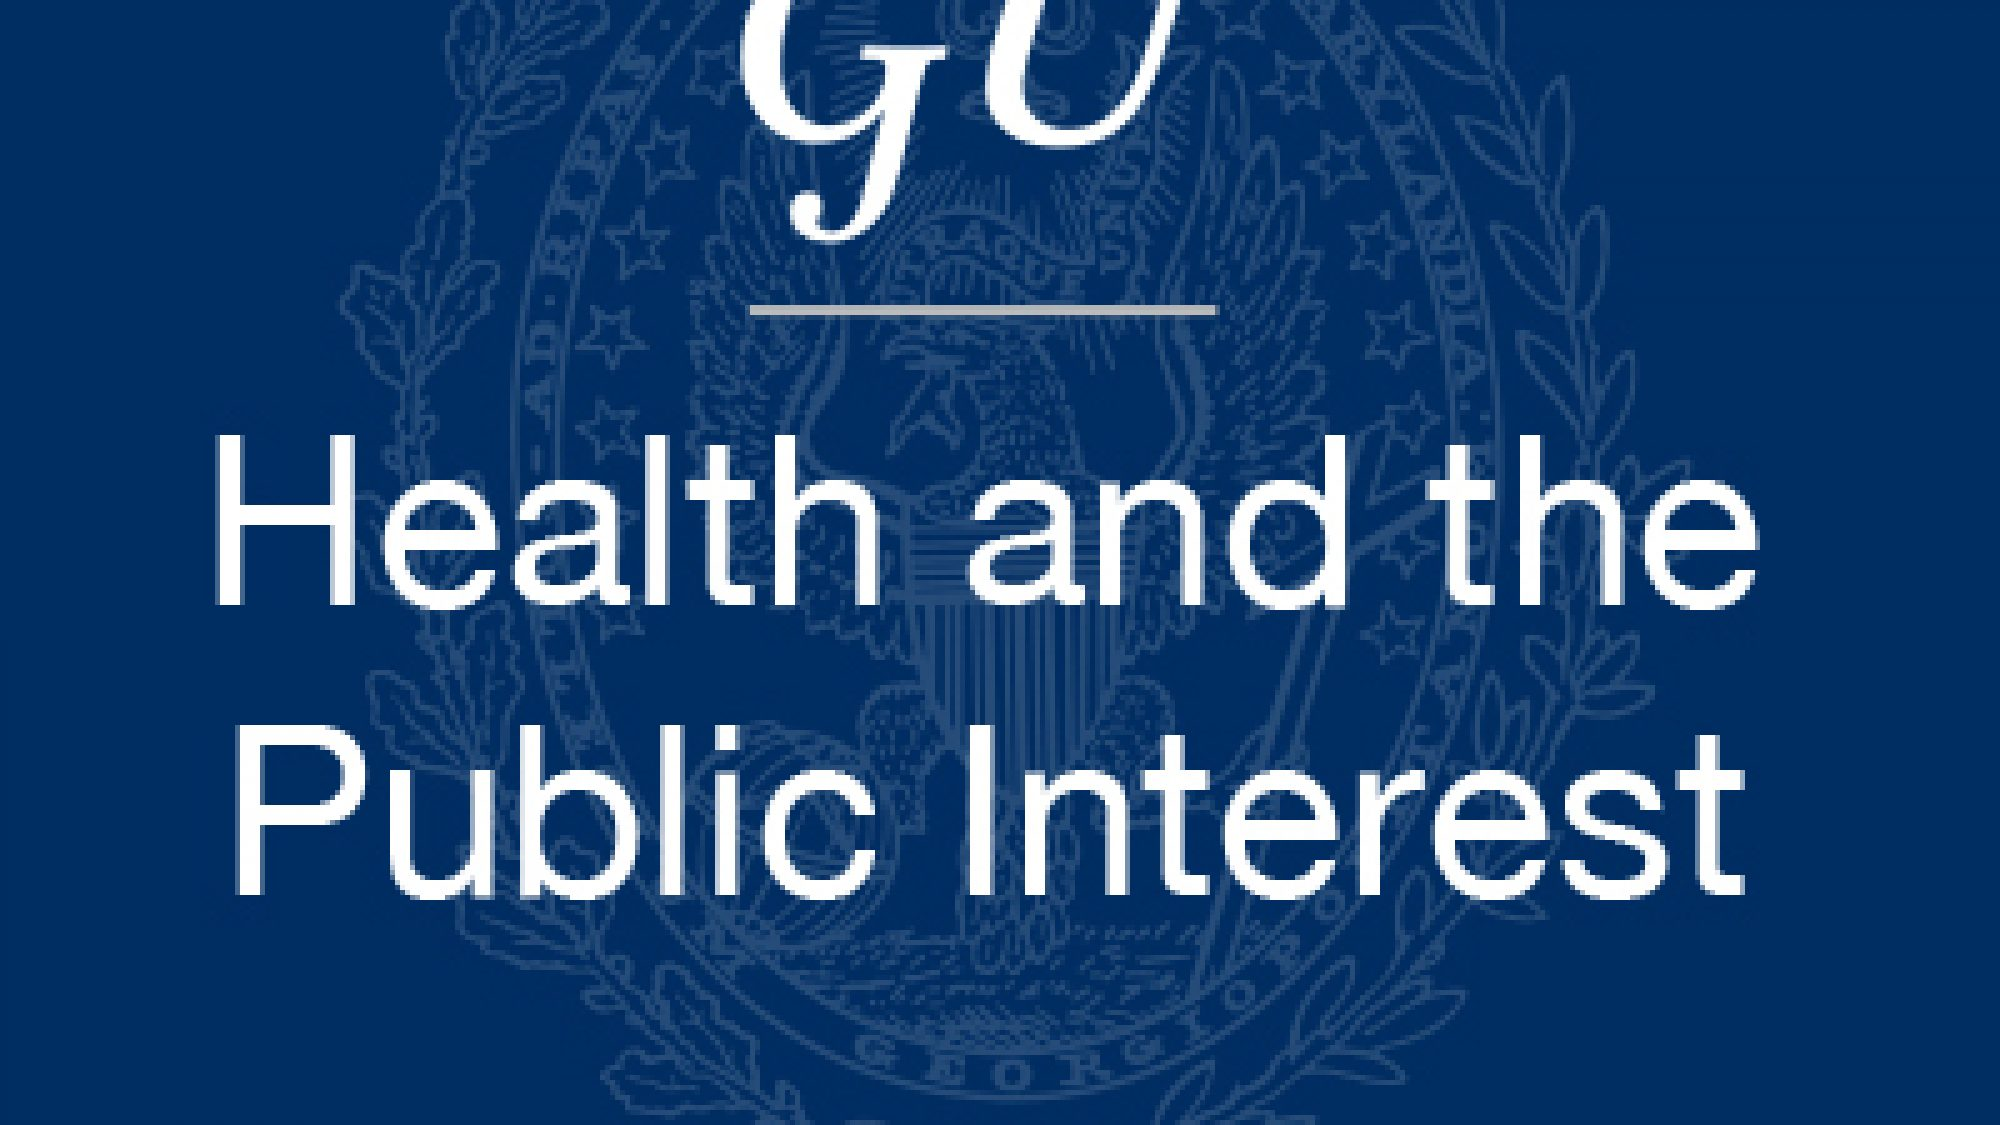 M.S. Health and the Public Interest social media logo